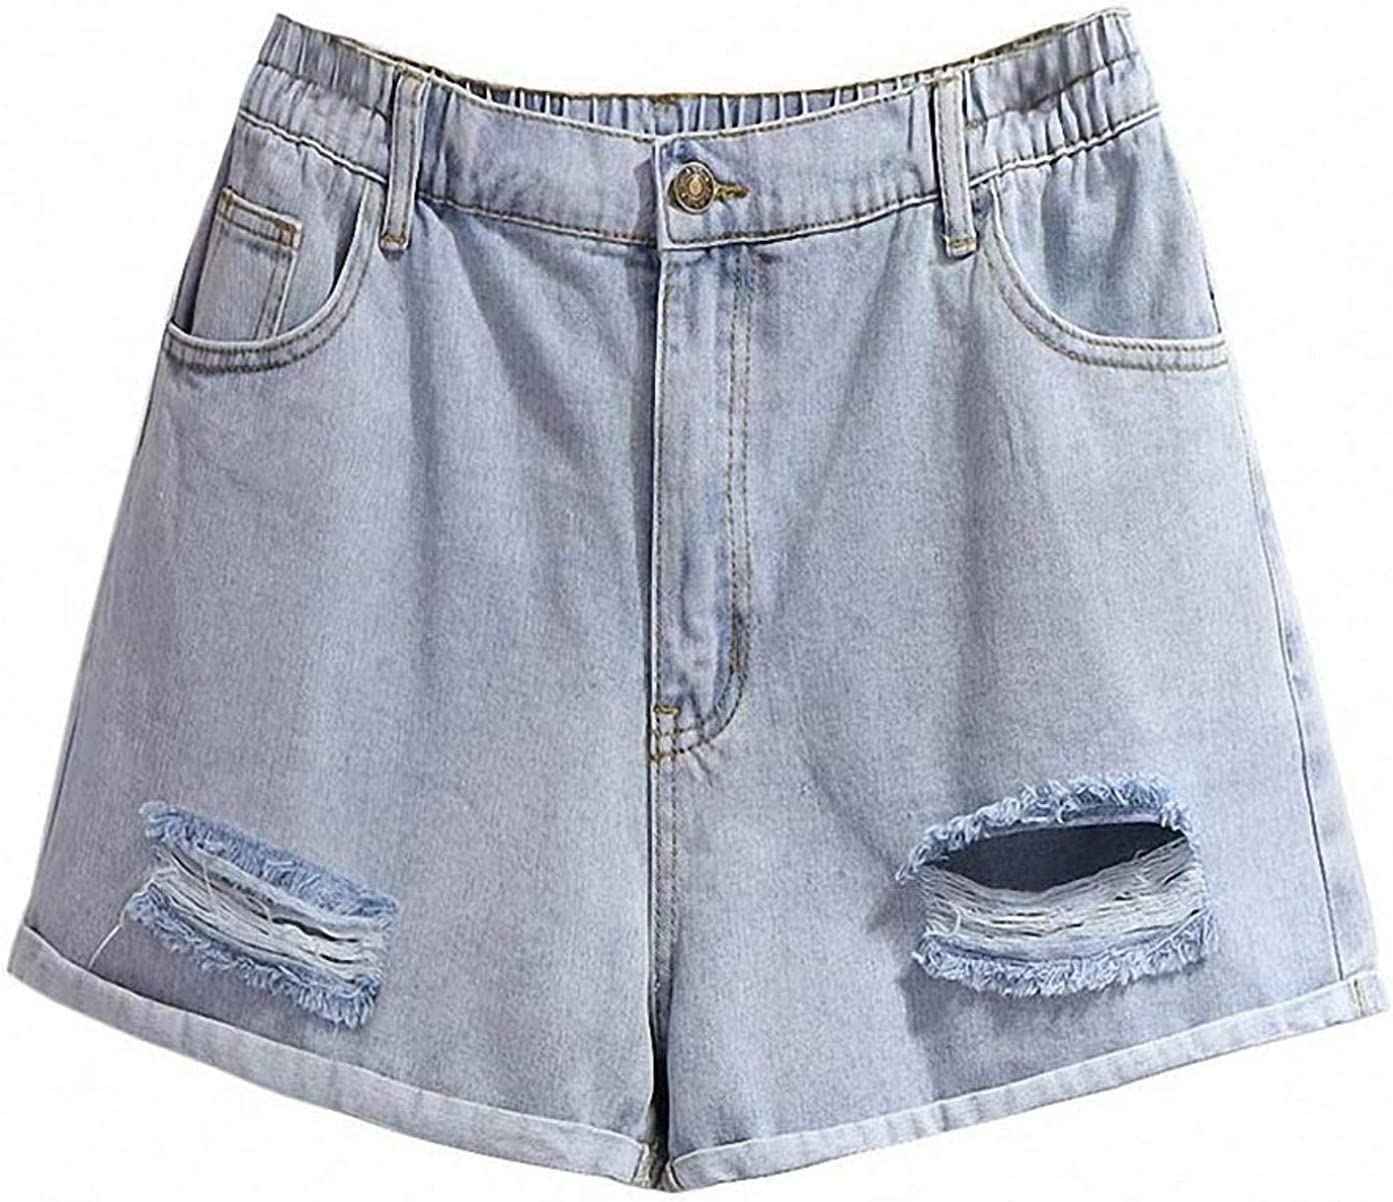 Tayaho Summer Plus Size Denim Shorts for Women Large Loose Casual Wide Leg Hole Pocket Jeans Shorts